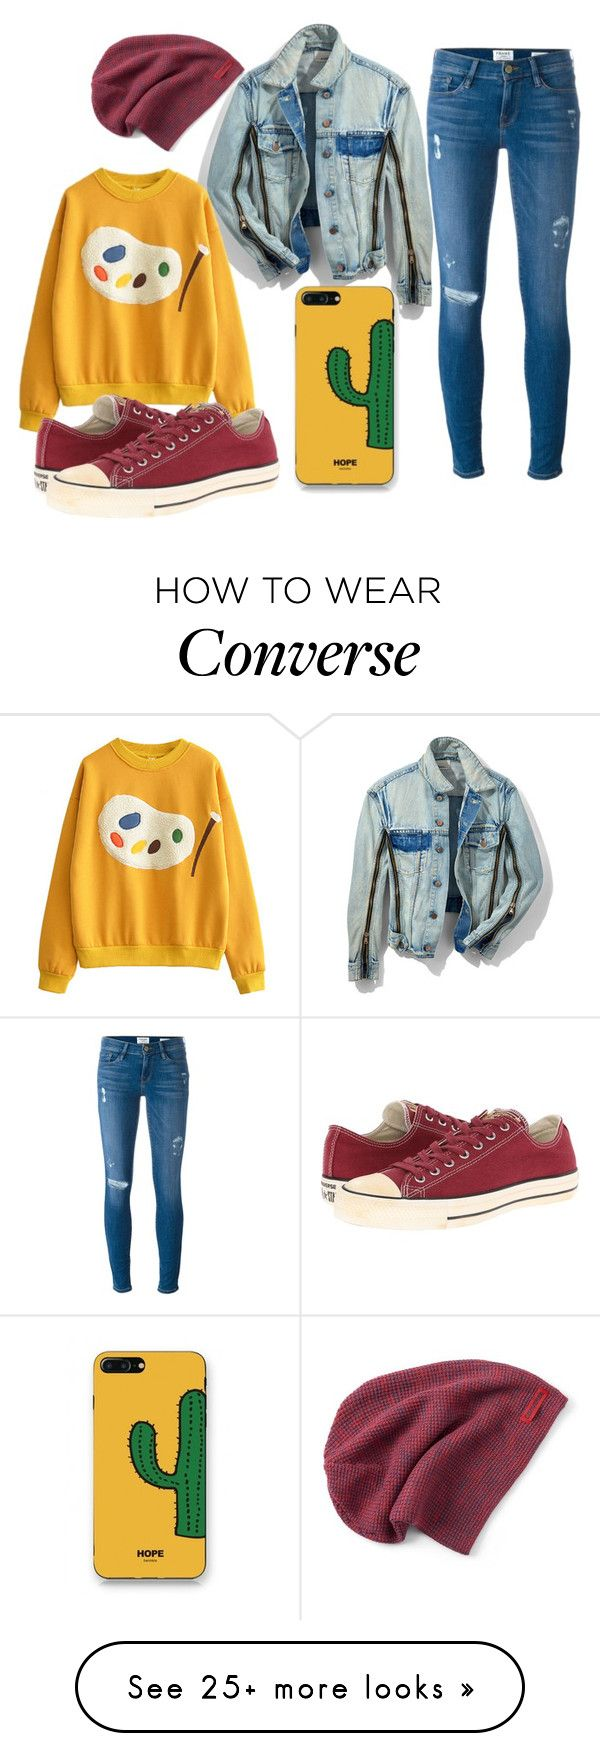 """Untitled #569"" by the-indie-rock-queen on Polyvore featuring Frame, 3.1 Phillip Lim, Converse and WithChic"